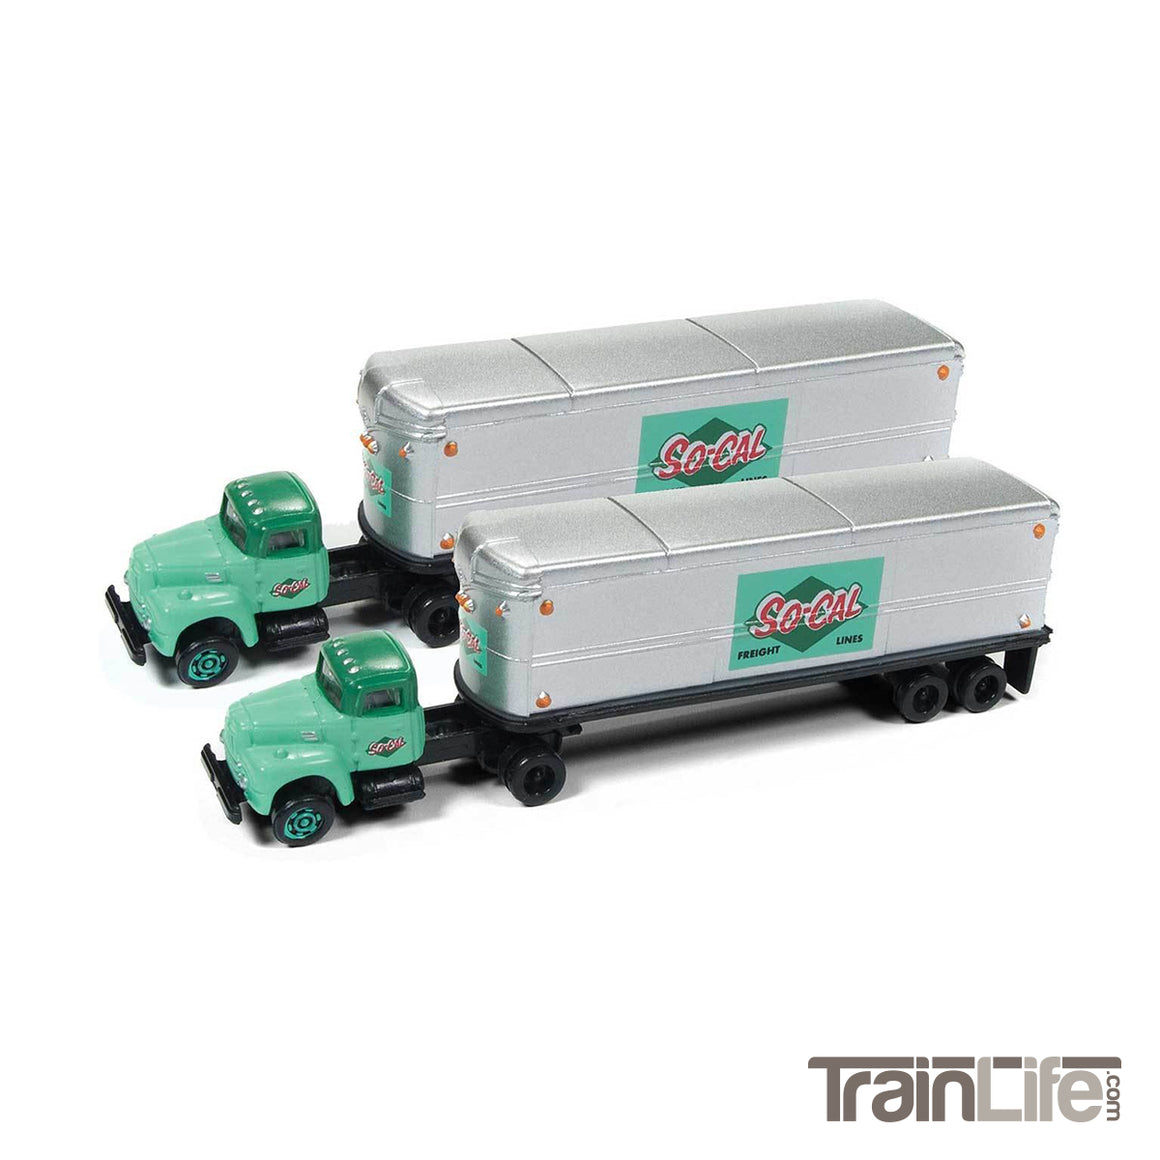 N Scale: IH R-190 Tractor & Trailer Set - So-Cal Frieght Lines - 2 Pack